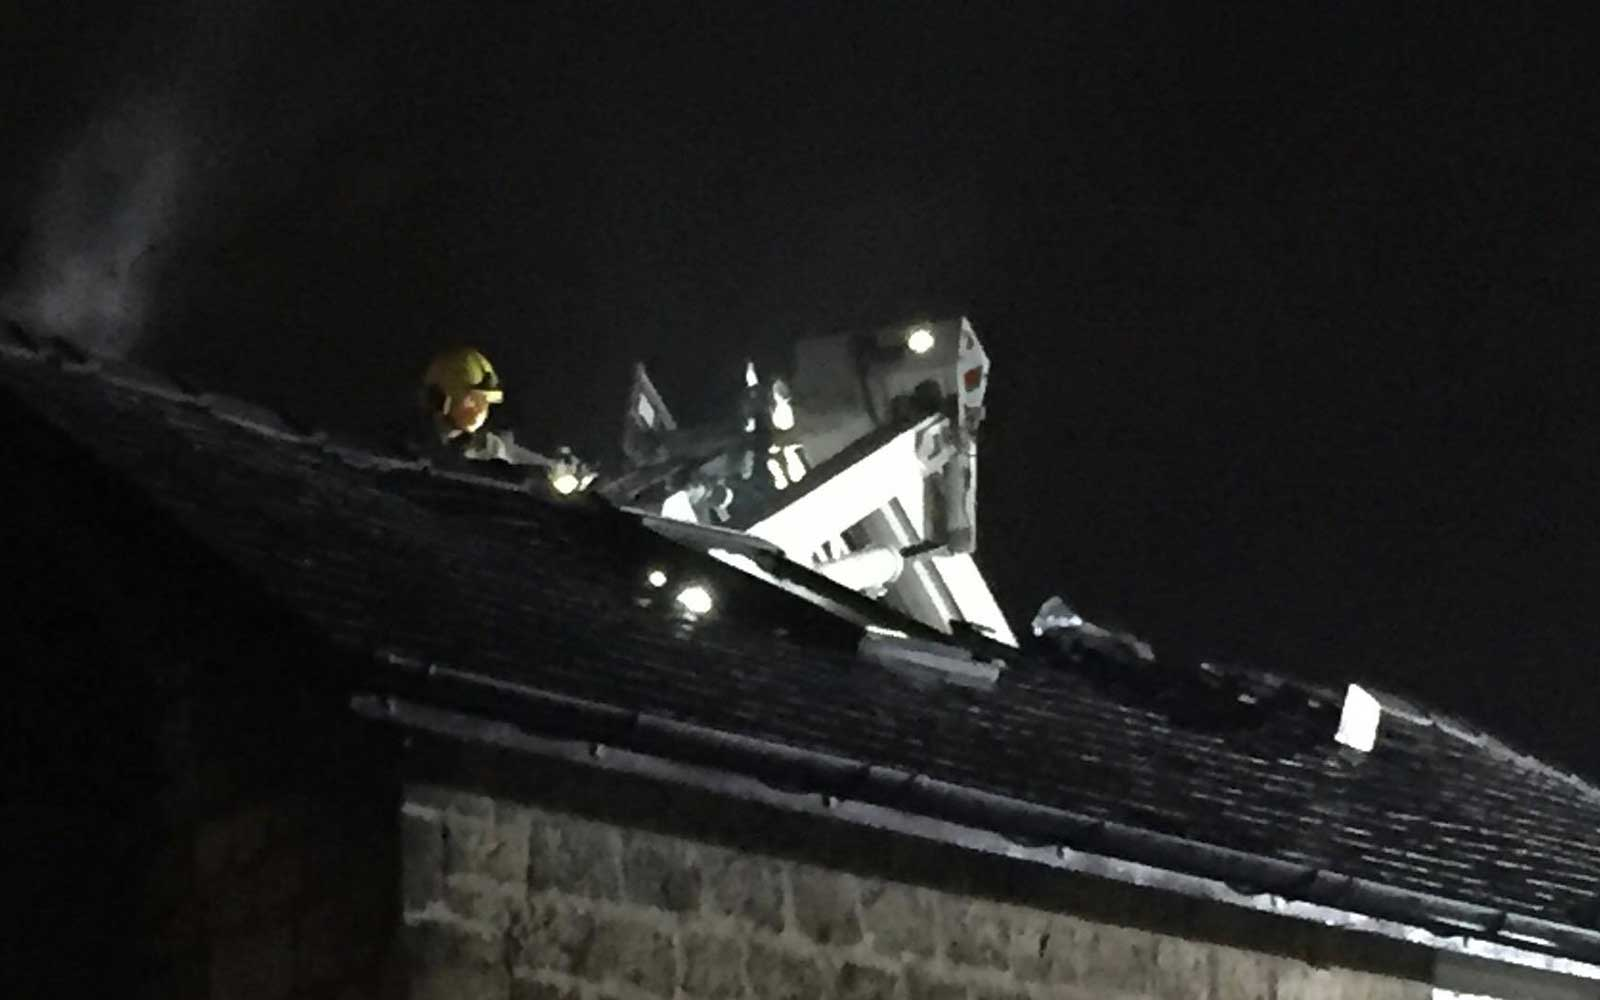 The damage to the roof after the fire was extinguished.